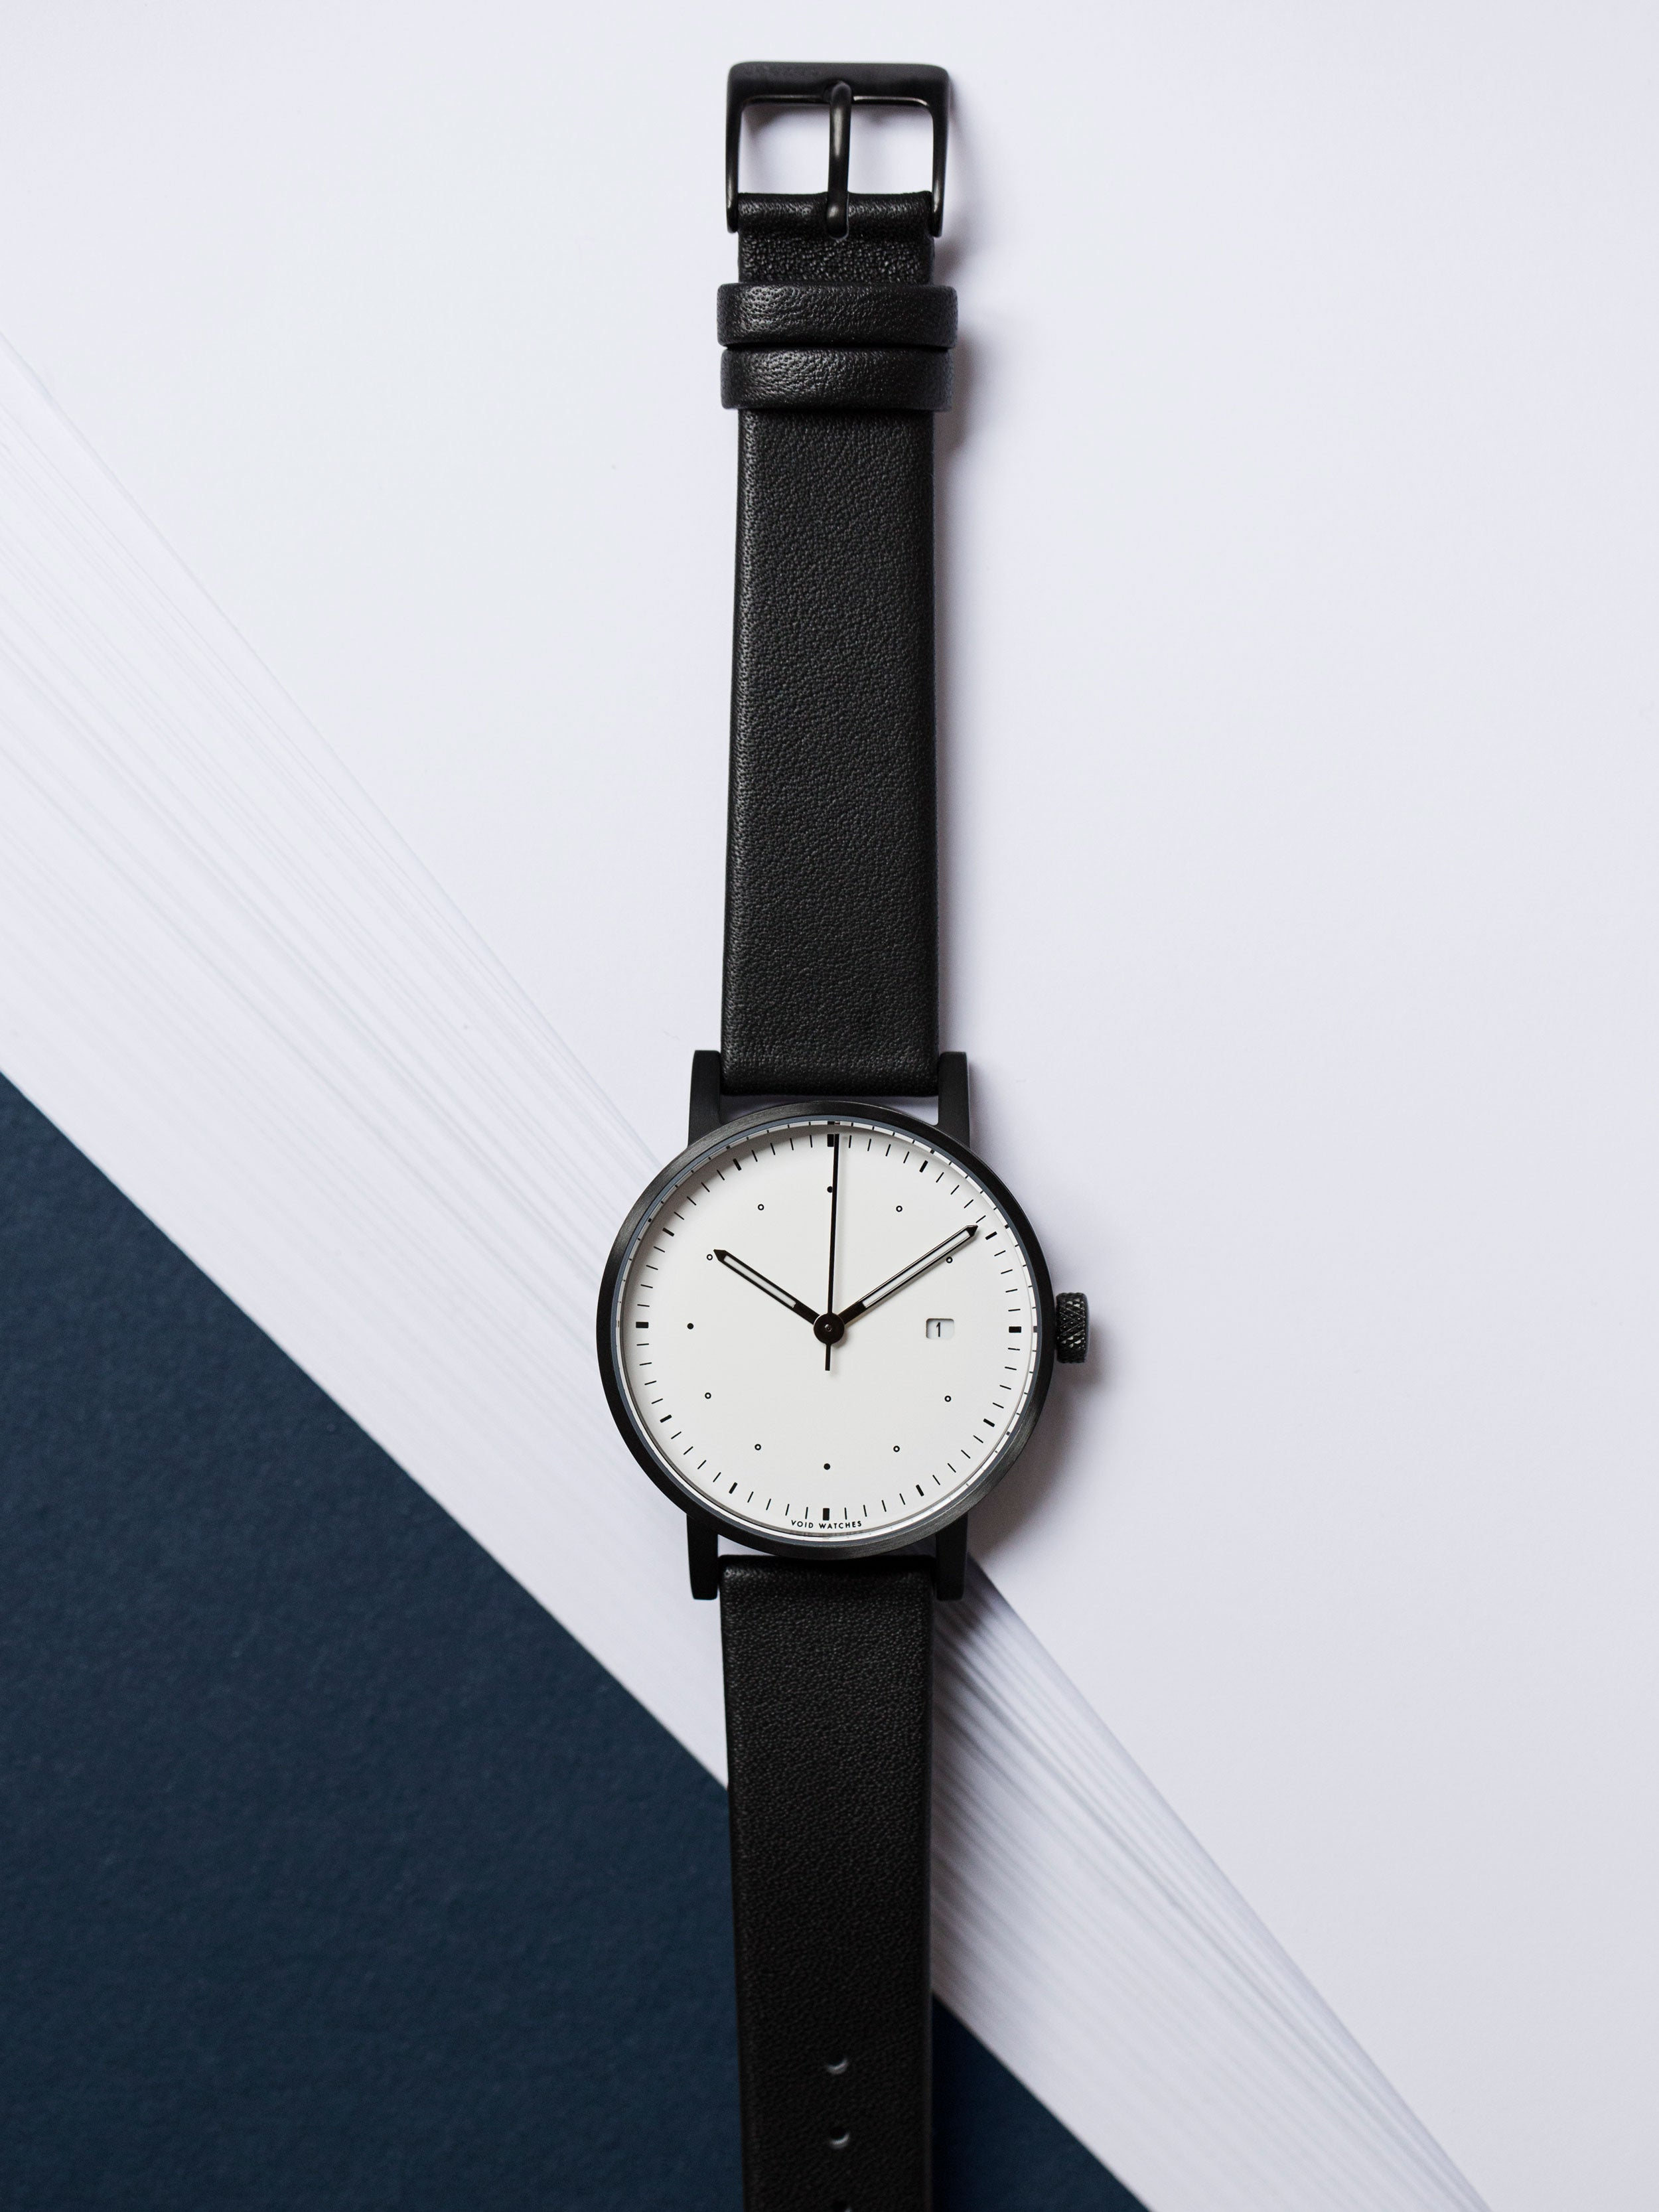 The Limited Edition Dezeen watch by VOID Watches. Designed by David Ericsson and Patrick Kim Gustafson. V03D-Dezeen.